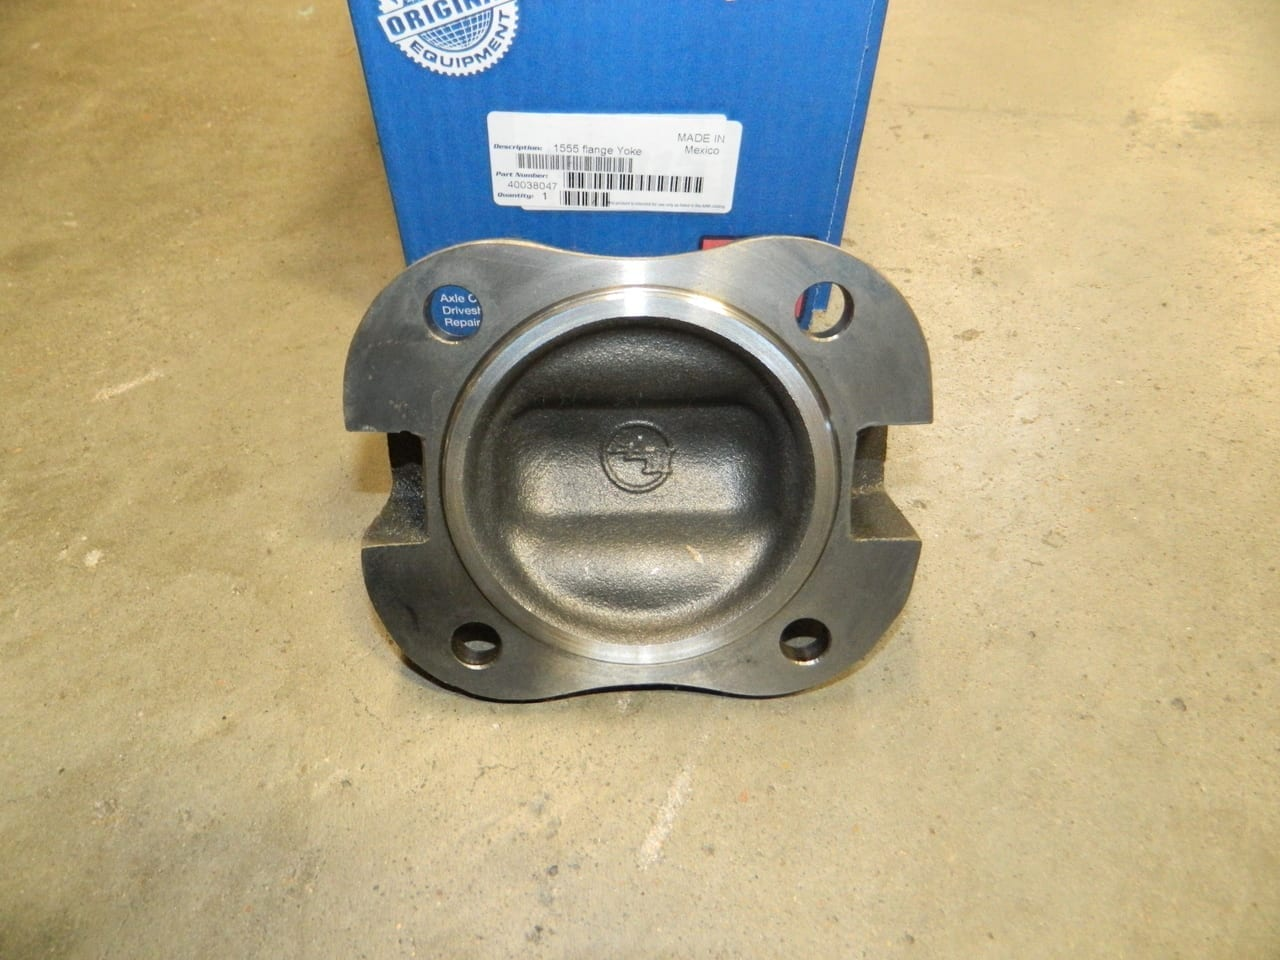 Dodge Ram 2003+ 1555 Drive Shaft Flange Yoke 4 Bolt 10.5 11.5 Rear Driveline U-Joint Universal